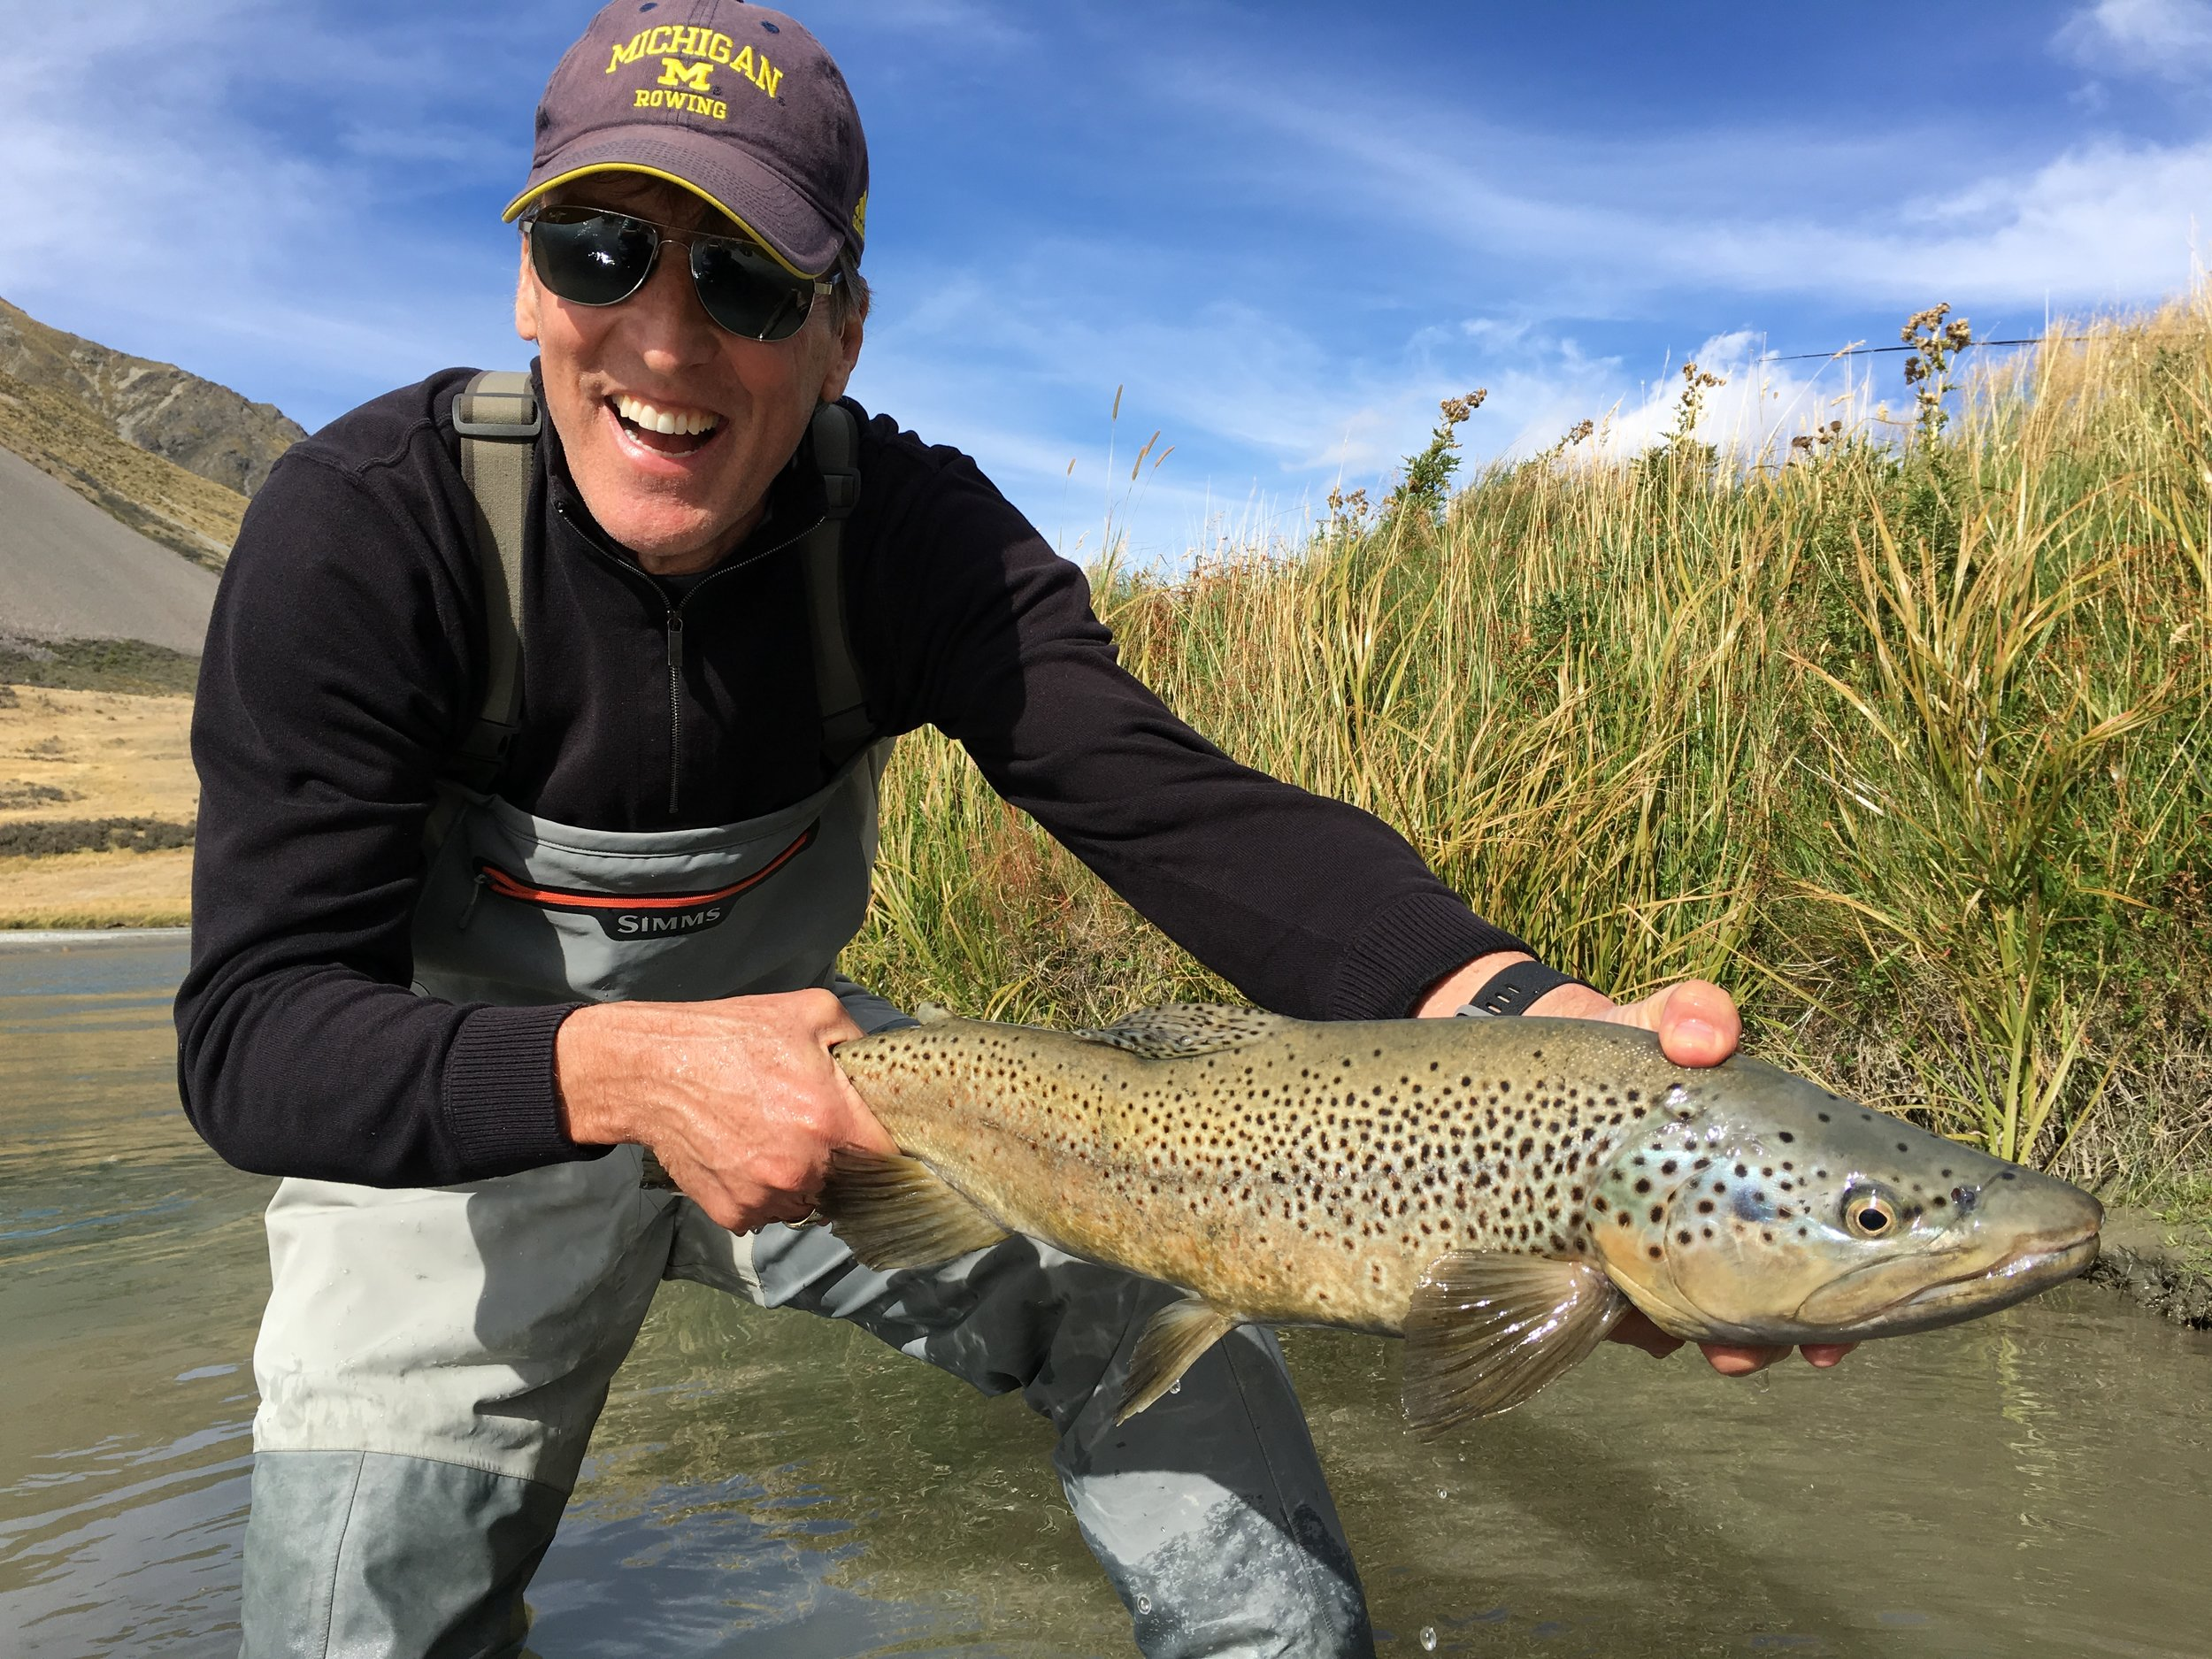 New Zealand guided fly fishing